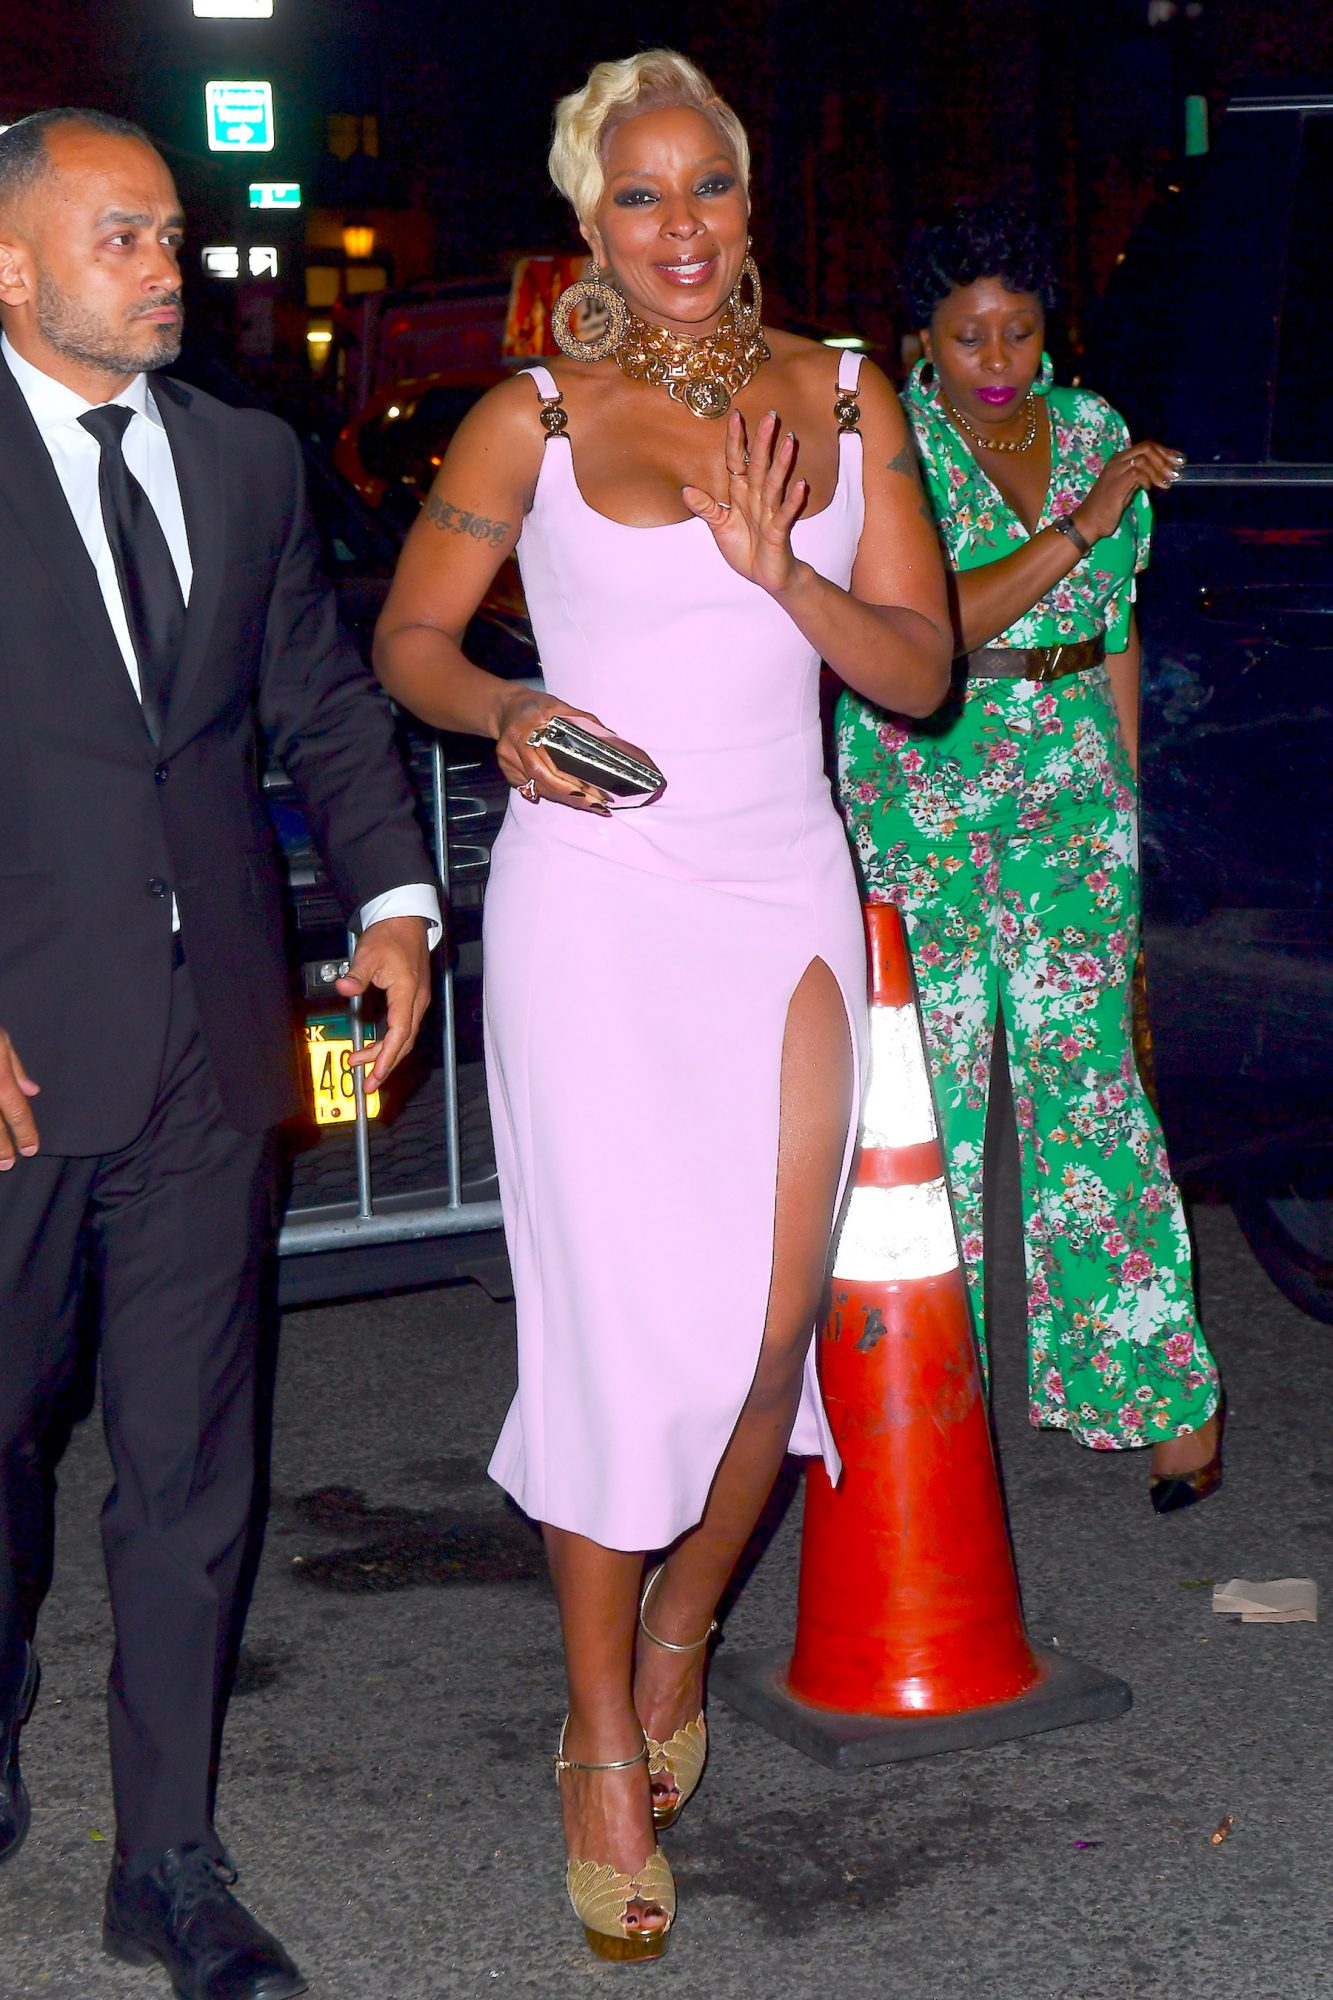 Sean Diddy Combs and Cassie Party with Mary J Blige at Met Gala After Party